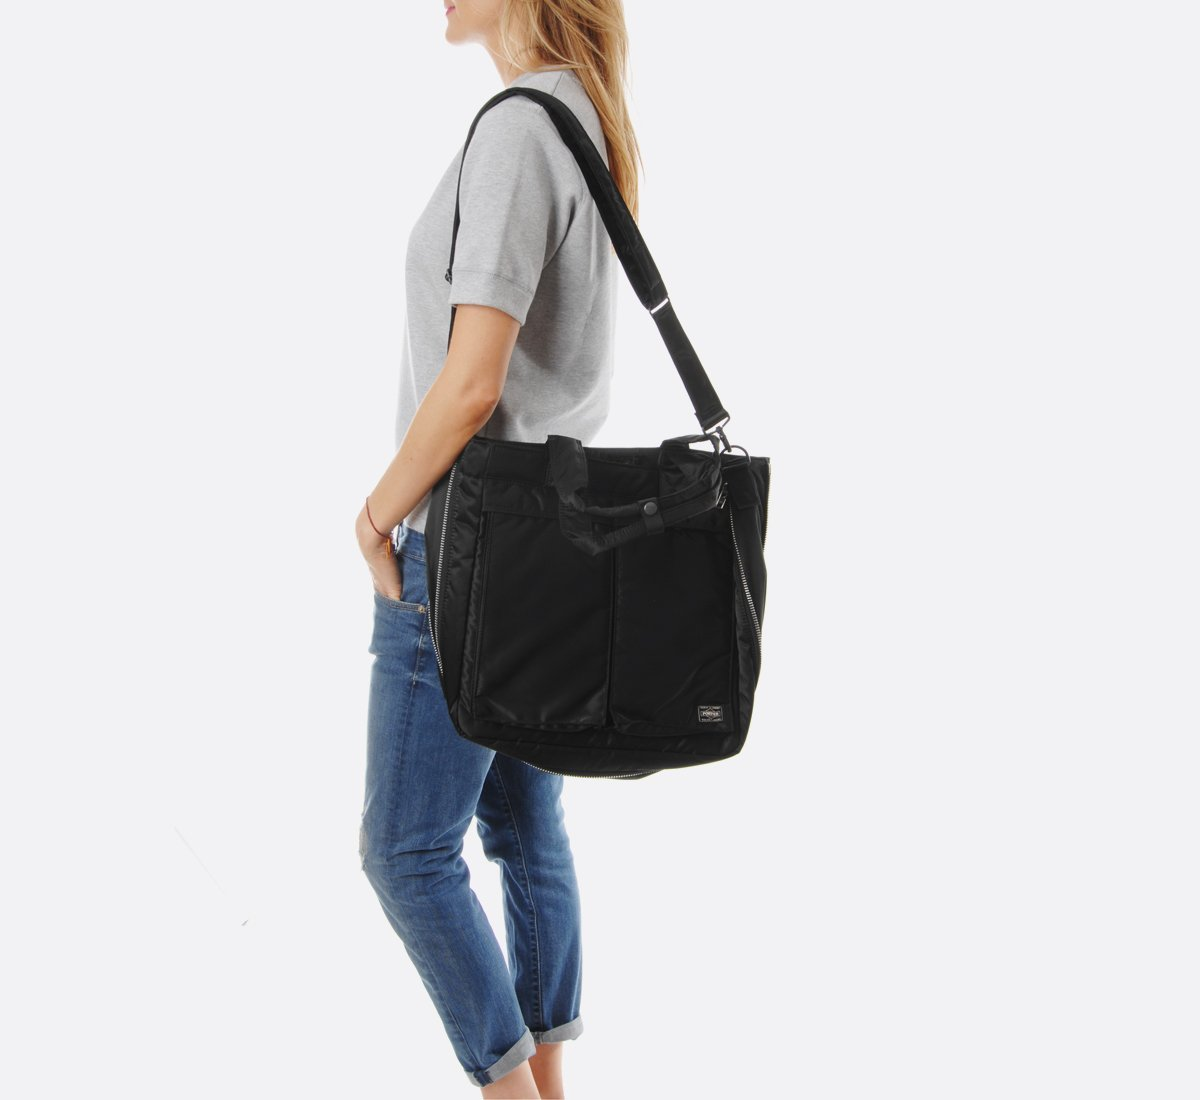 Porter Tanker Two Way Tote Bag - Black  b367e9f796b75